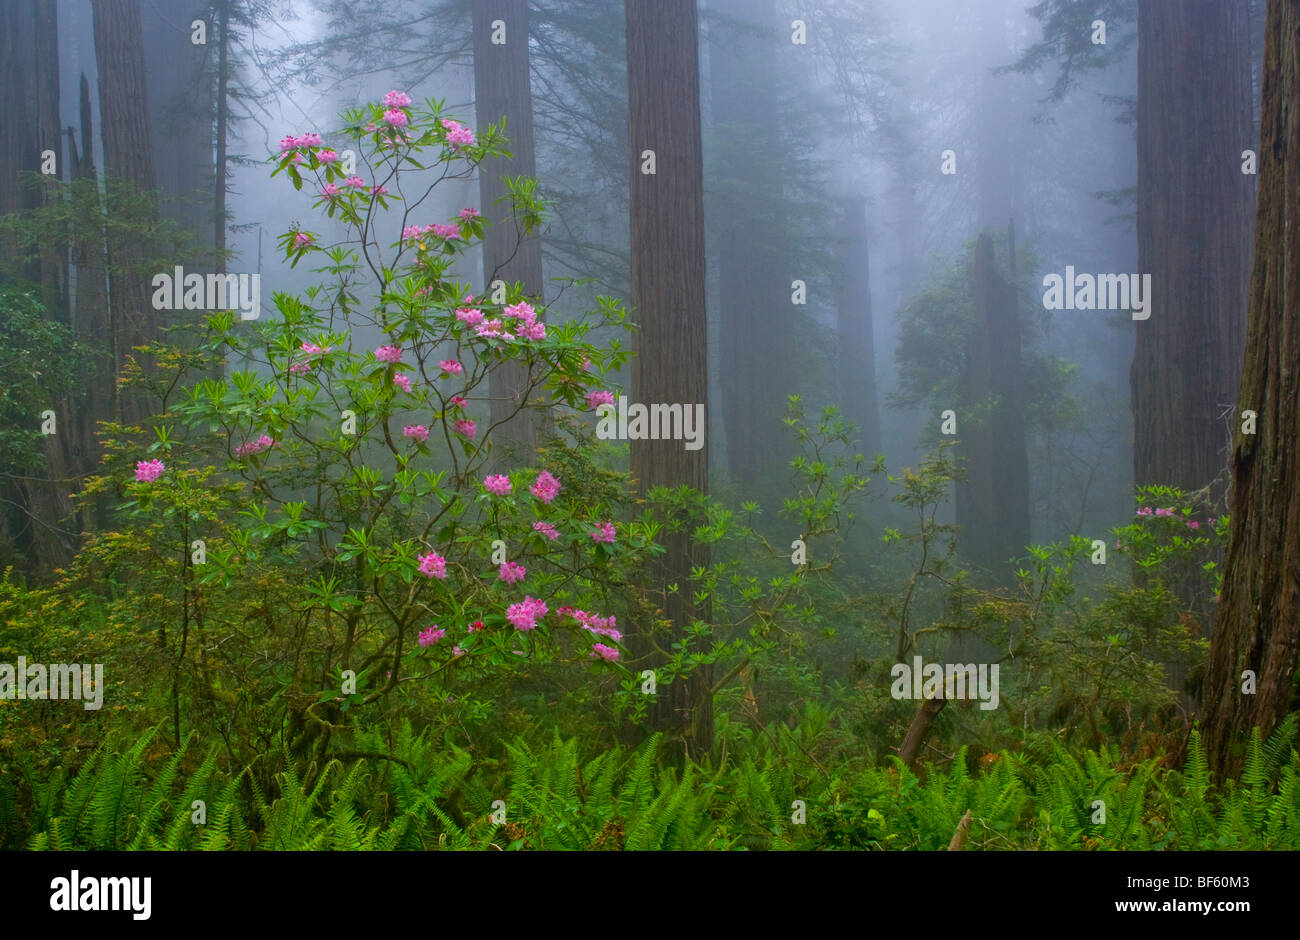 Wild Rhododendron flowers in bloom, Redwood trees, and fog in forest, Redwood National Park, California - Stock Image